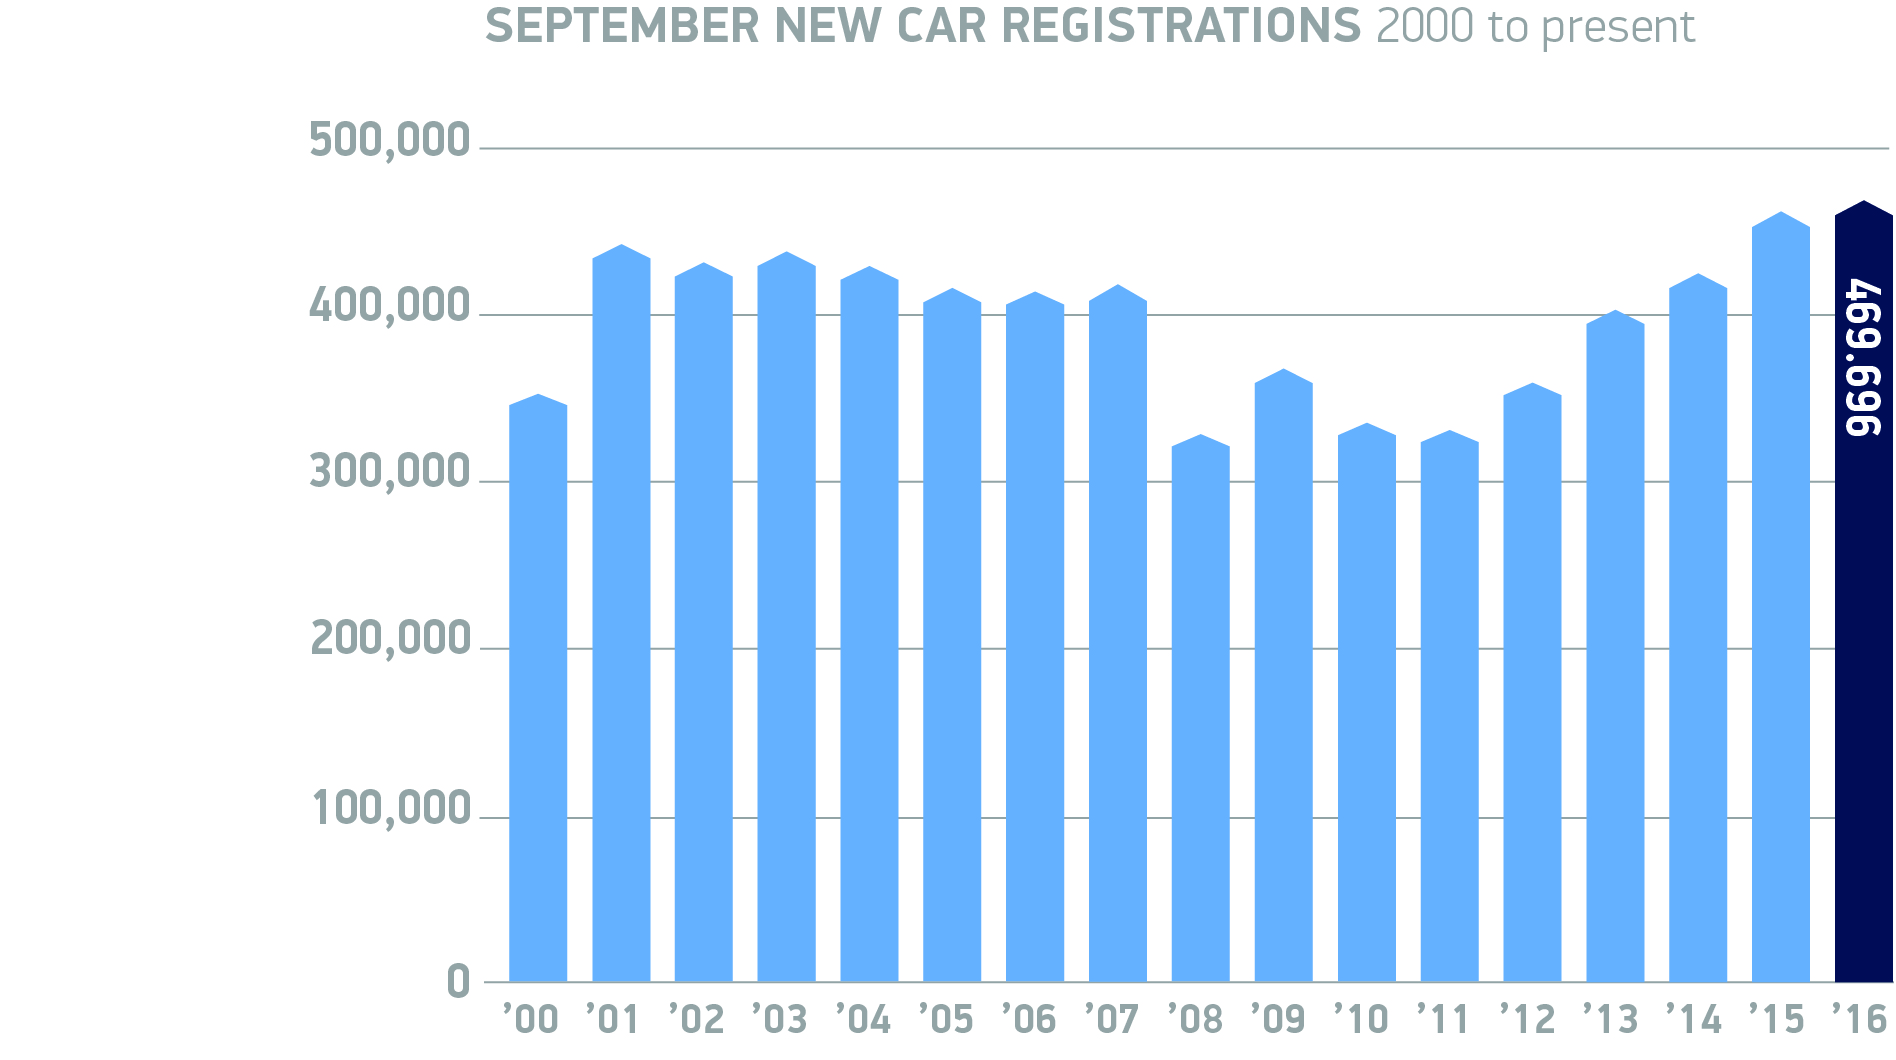 september-new-car-registrations-2000-to-present-chart